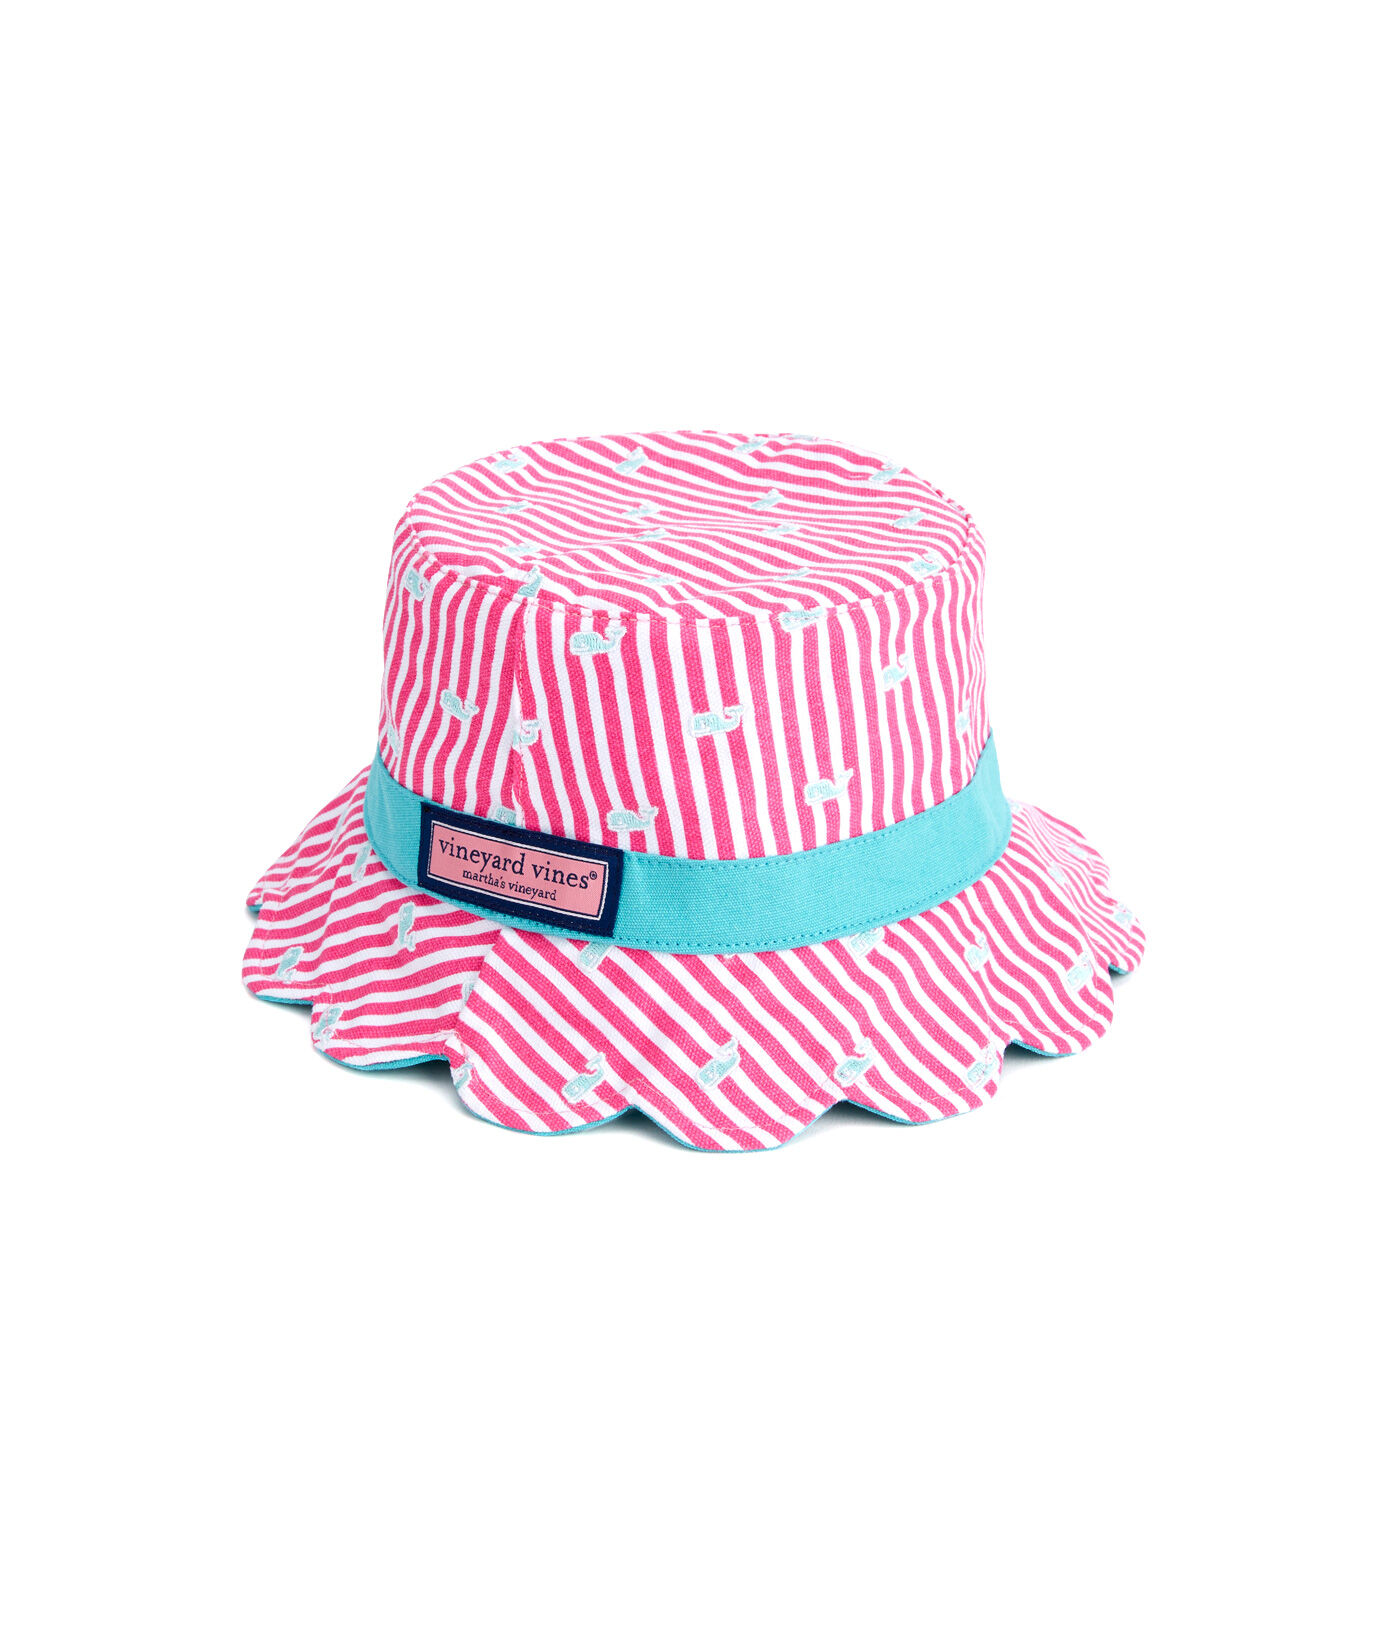 where can i buy girls striped embroidered bucket hat 25288 2ff78 f1d761ef675